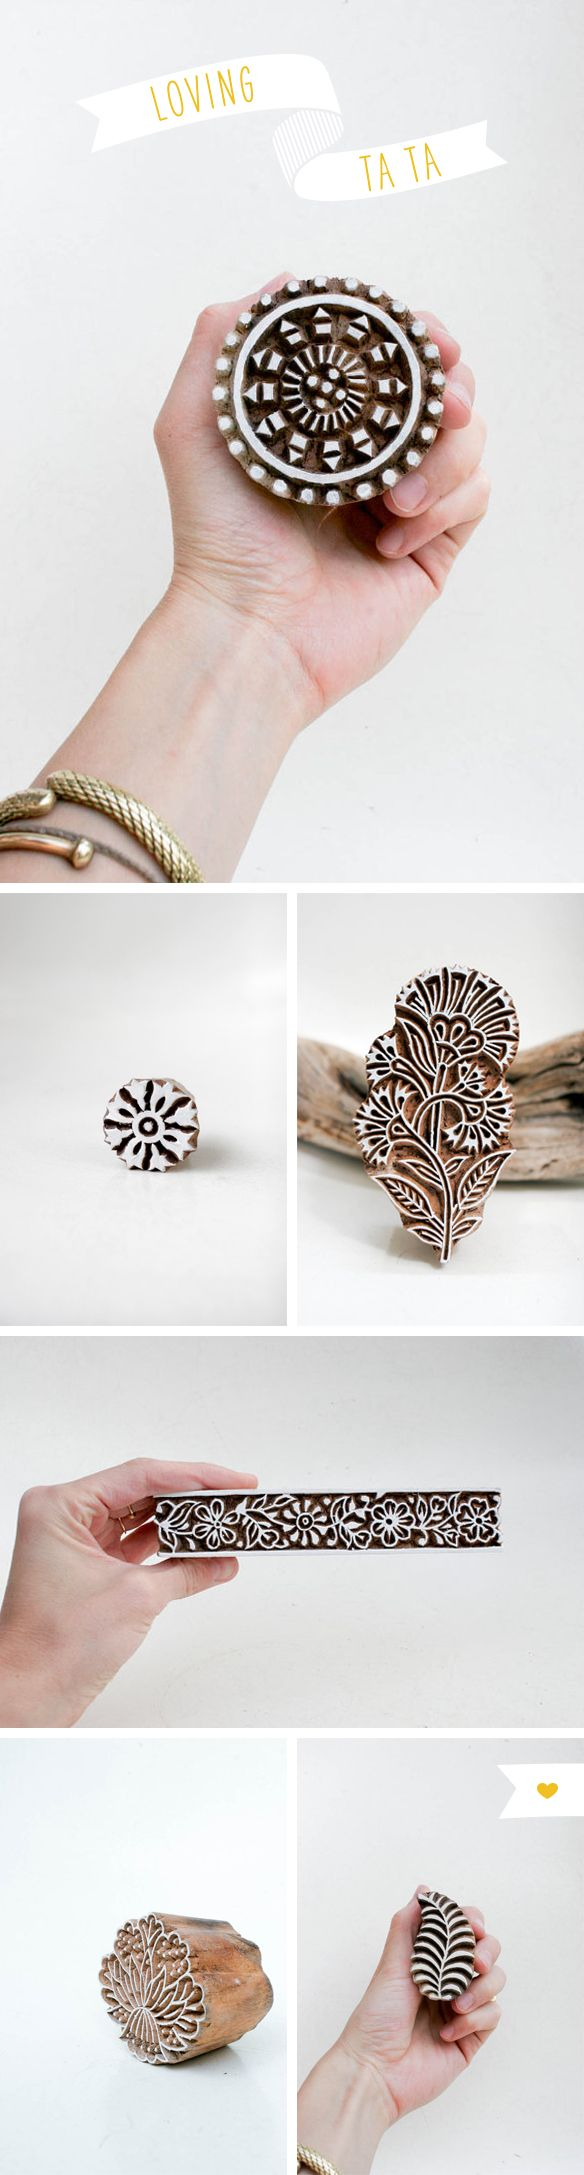 Oh I LOVE this indian block printing!! its amazing, would love to try it.